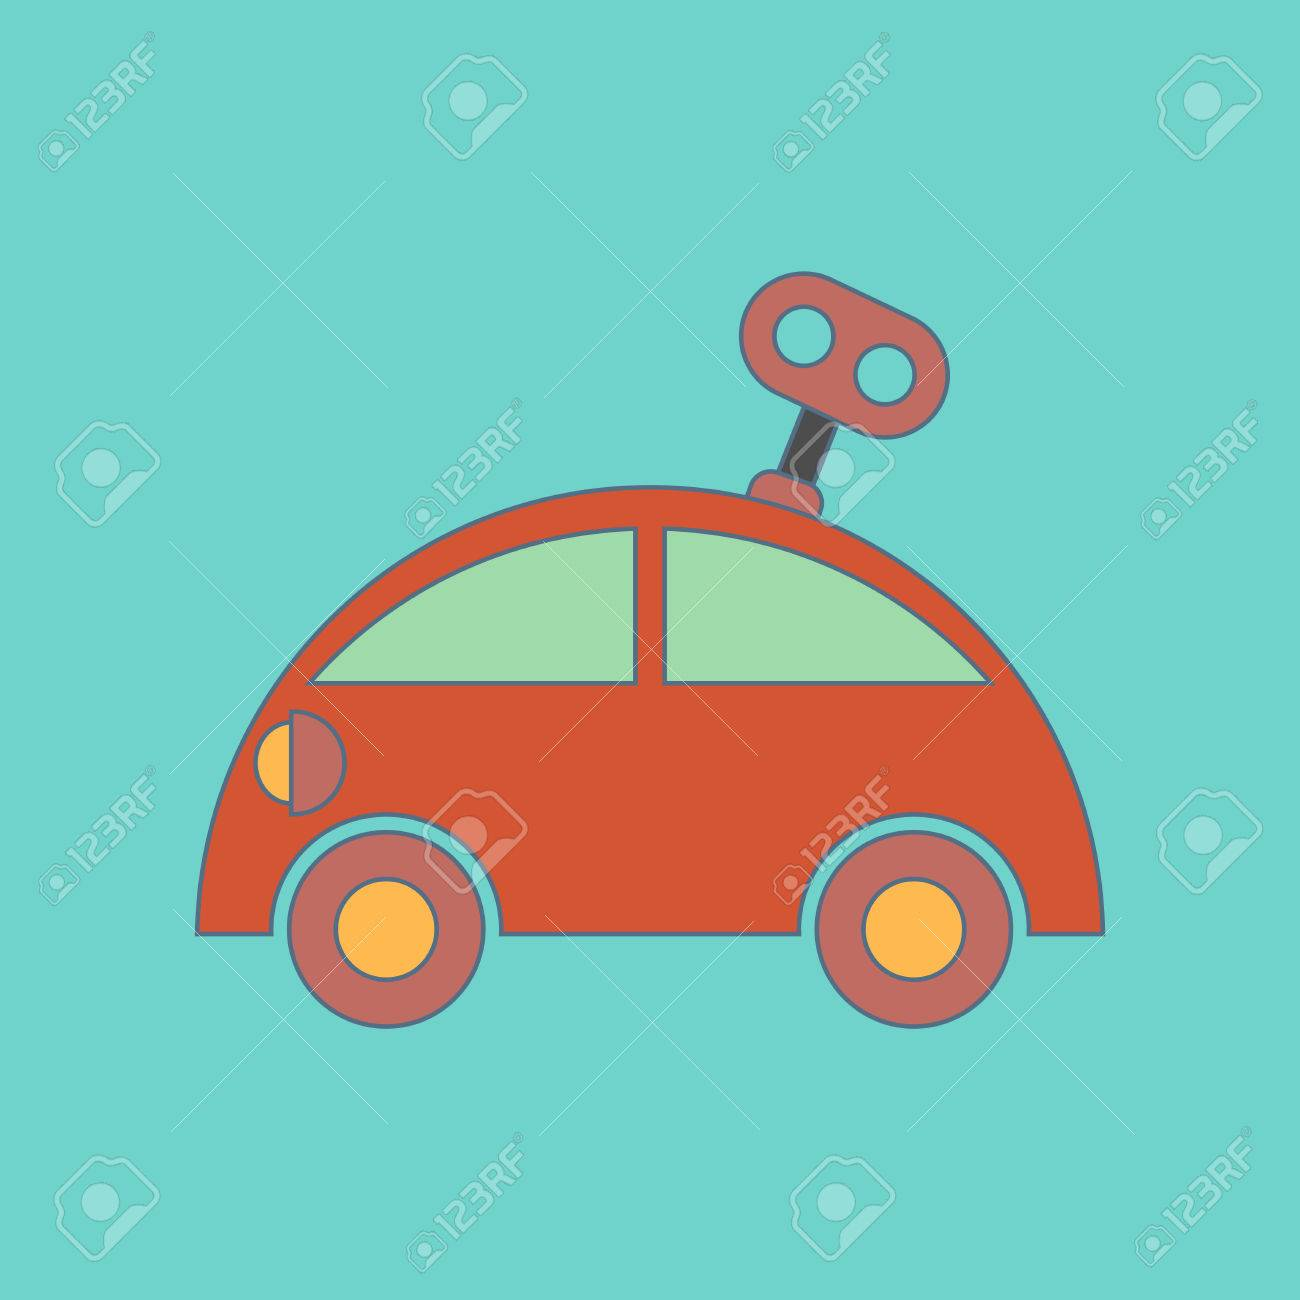 Flat Icon On Background Kids Toy Car With Key Royalty Free Cliparts